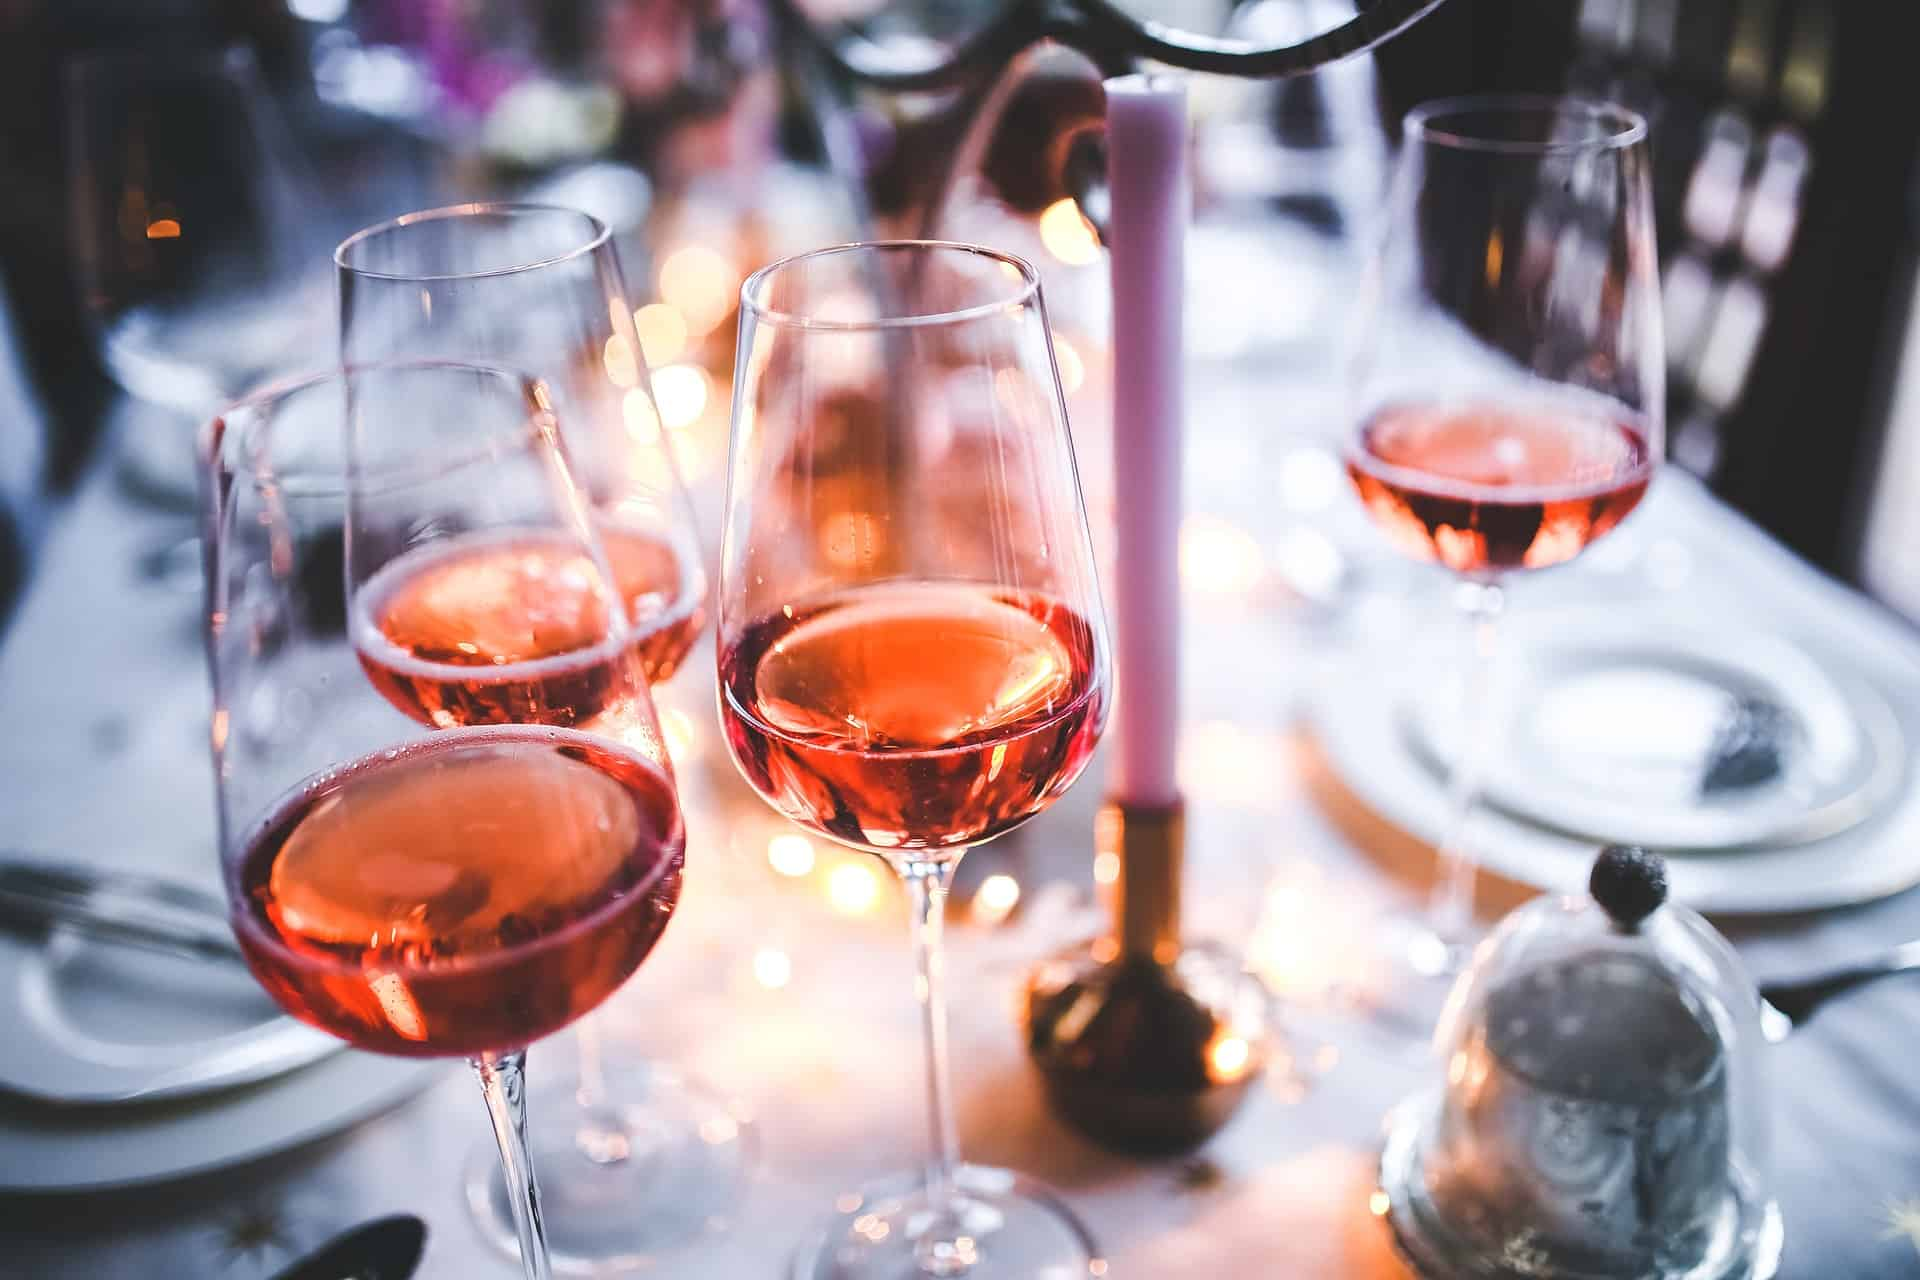 A white tablescape with 4 glasses of rose wine